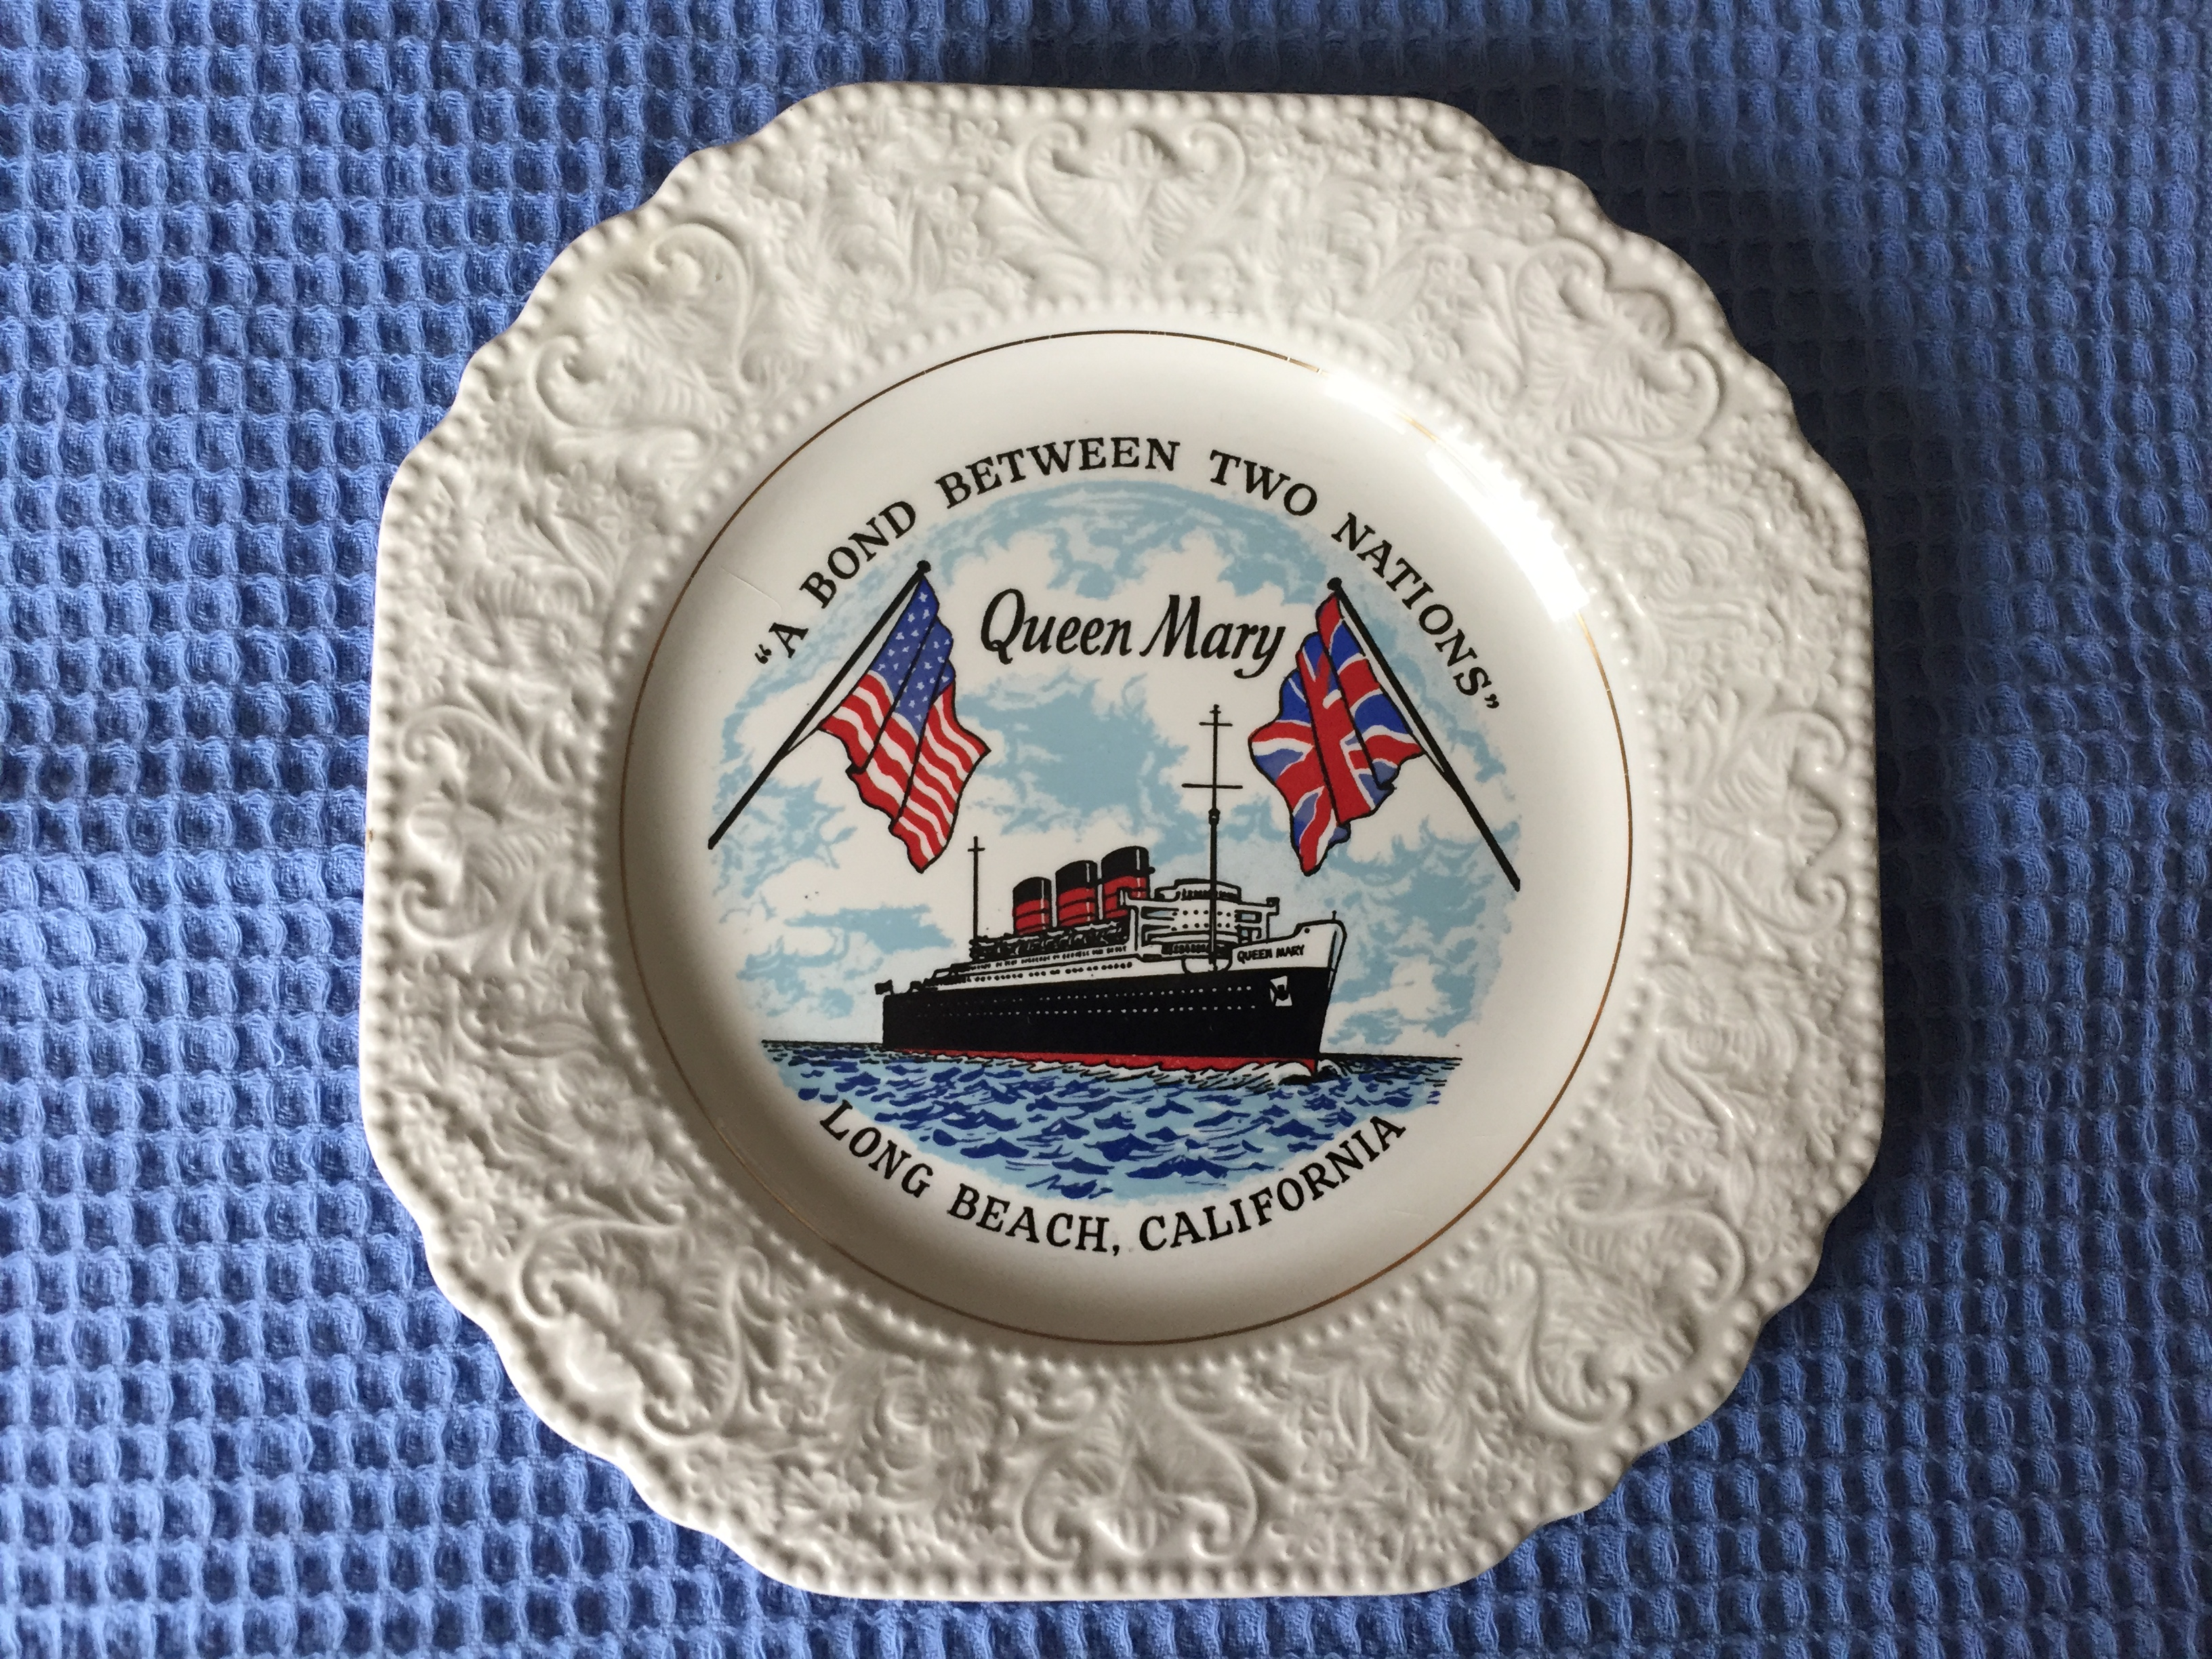 EARLY SOUVENIR RMS QUEEN MARY SOUVENIR PLATE FROM THE FIRST YEARS OF NEW HOME MOORED AT LONG BEACH, CALIFORNIA